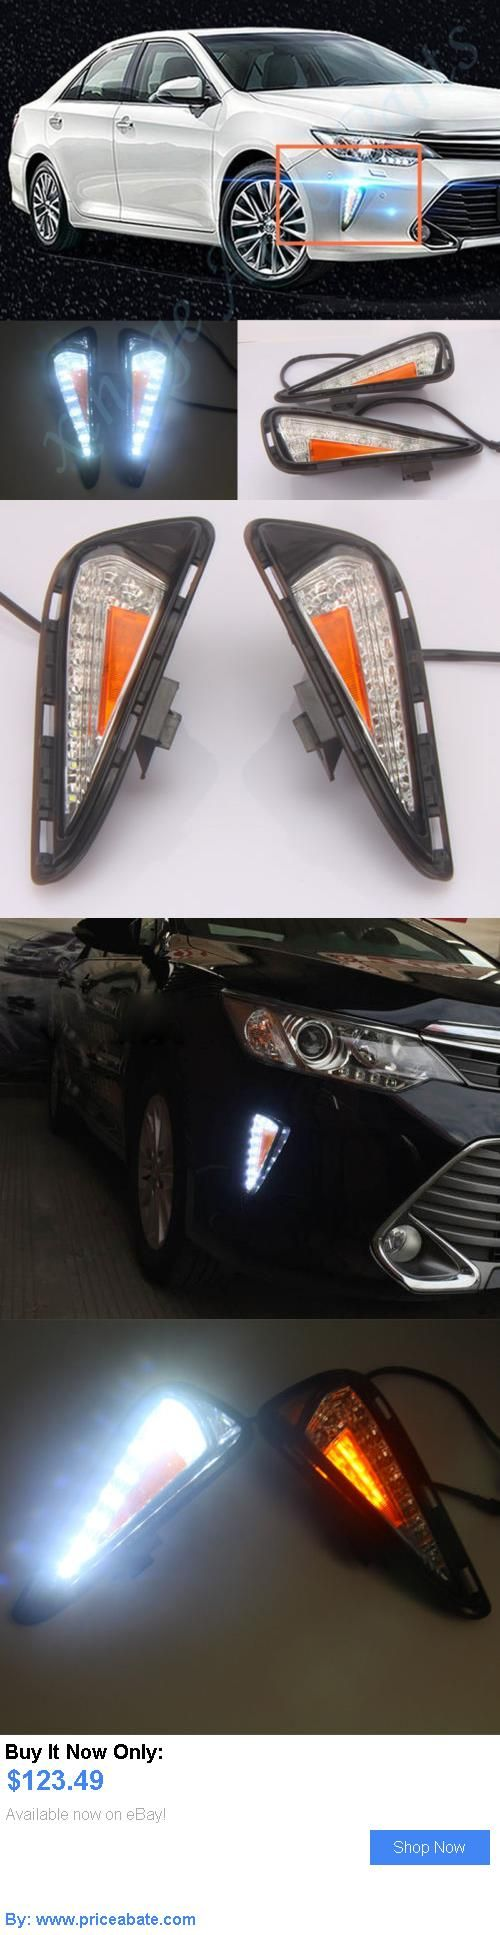 Motors Parts And Accessories: 2Pcs White Yellow Led Daytime Running Light Fog Light For Toyota Camry 2015-2016 BUY IT NOW ONLY: $123.49 #priceabateMotorsPartsAndAccessories OR #priceabate